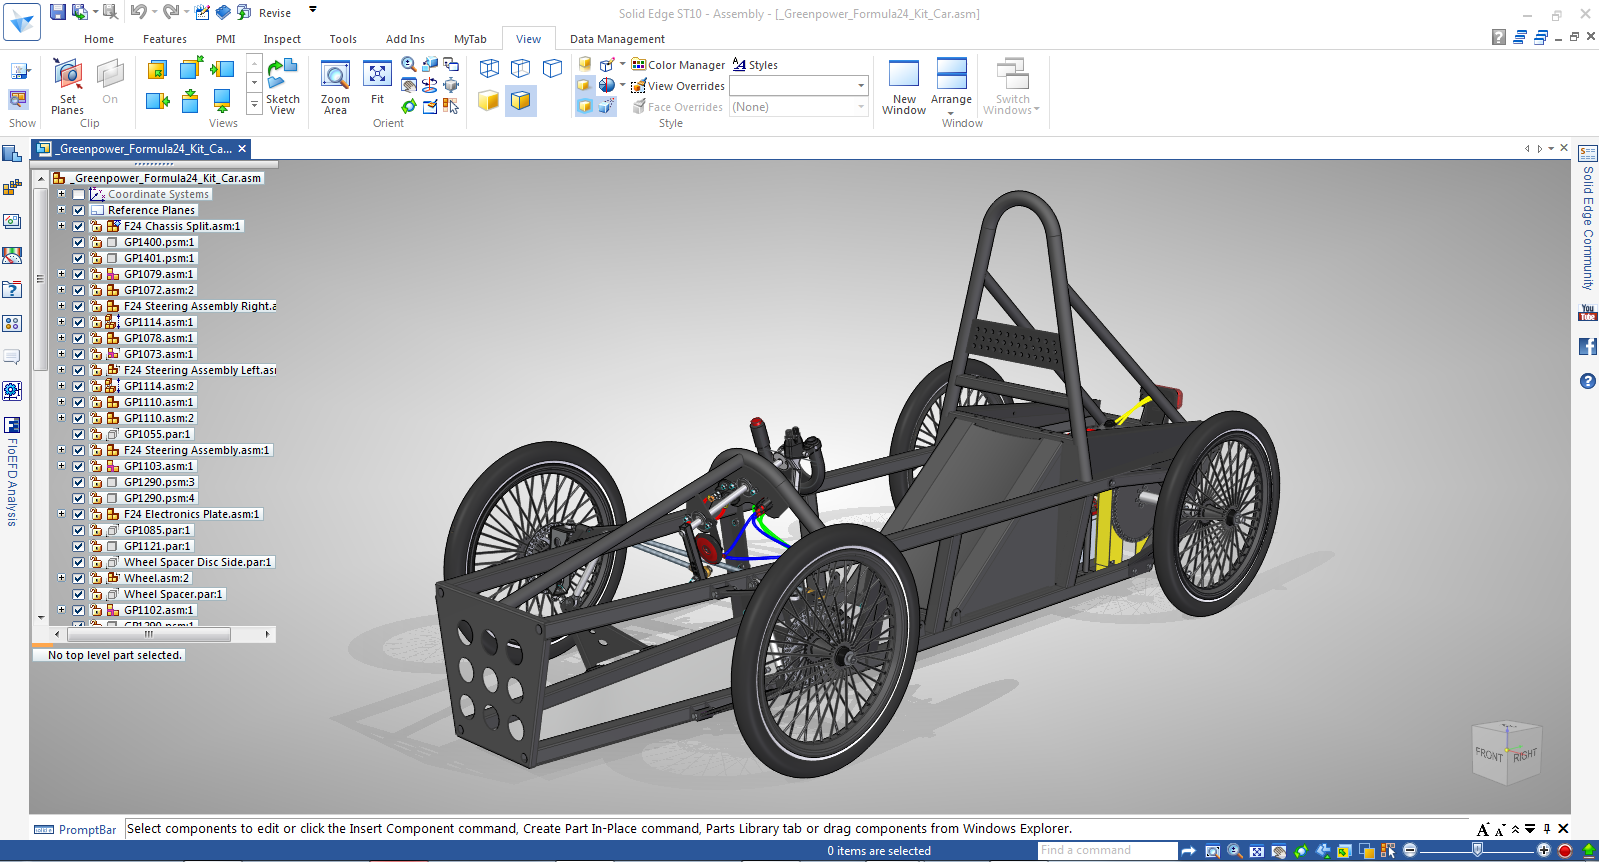 F24 - Split Chassis CAD Model - This file is referenced throughout our Greenpower training videos to serve as a starting point for teams wanting to design in Solid Edge, which Siemens PLM Software provides free to students and teachers.